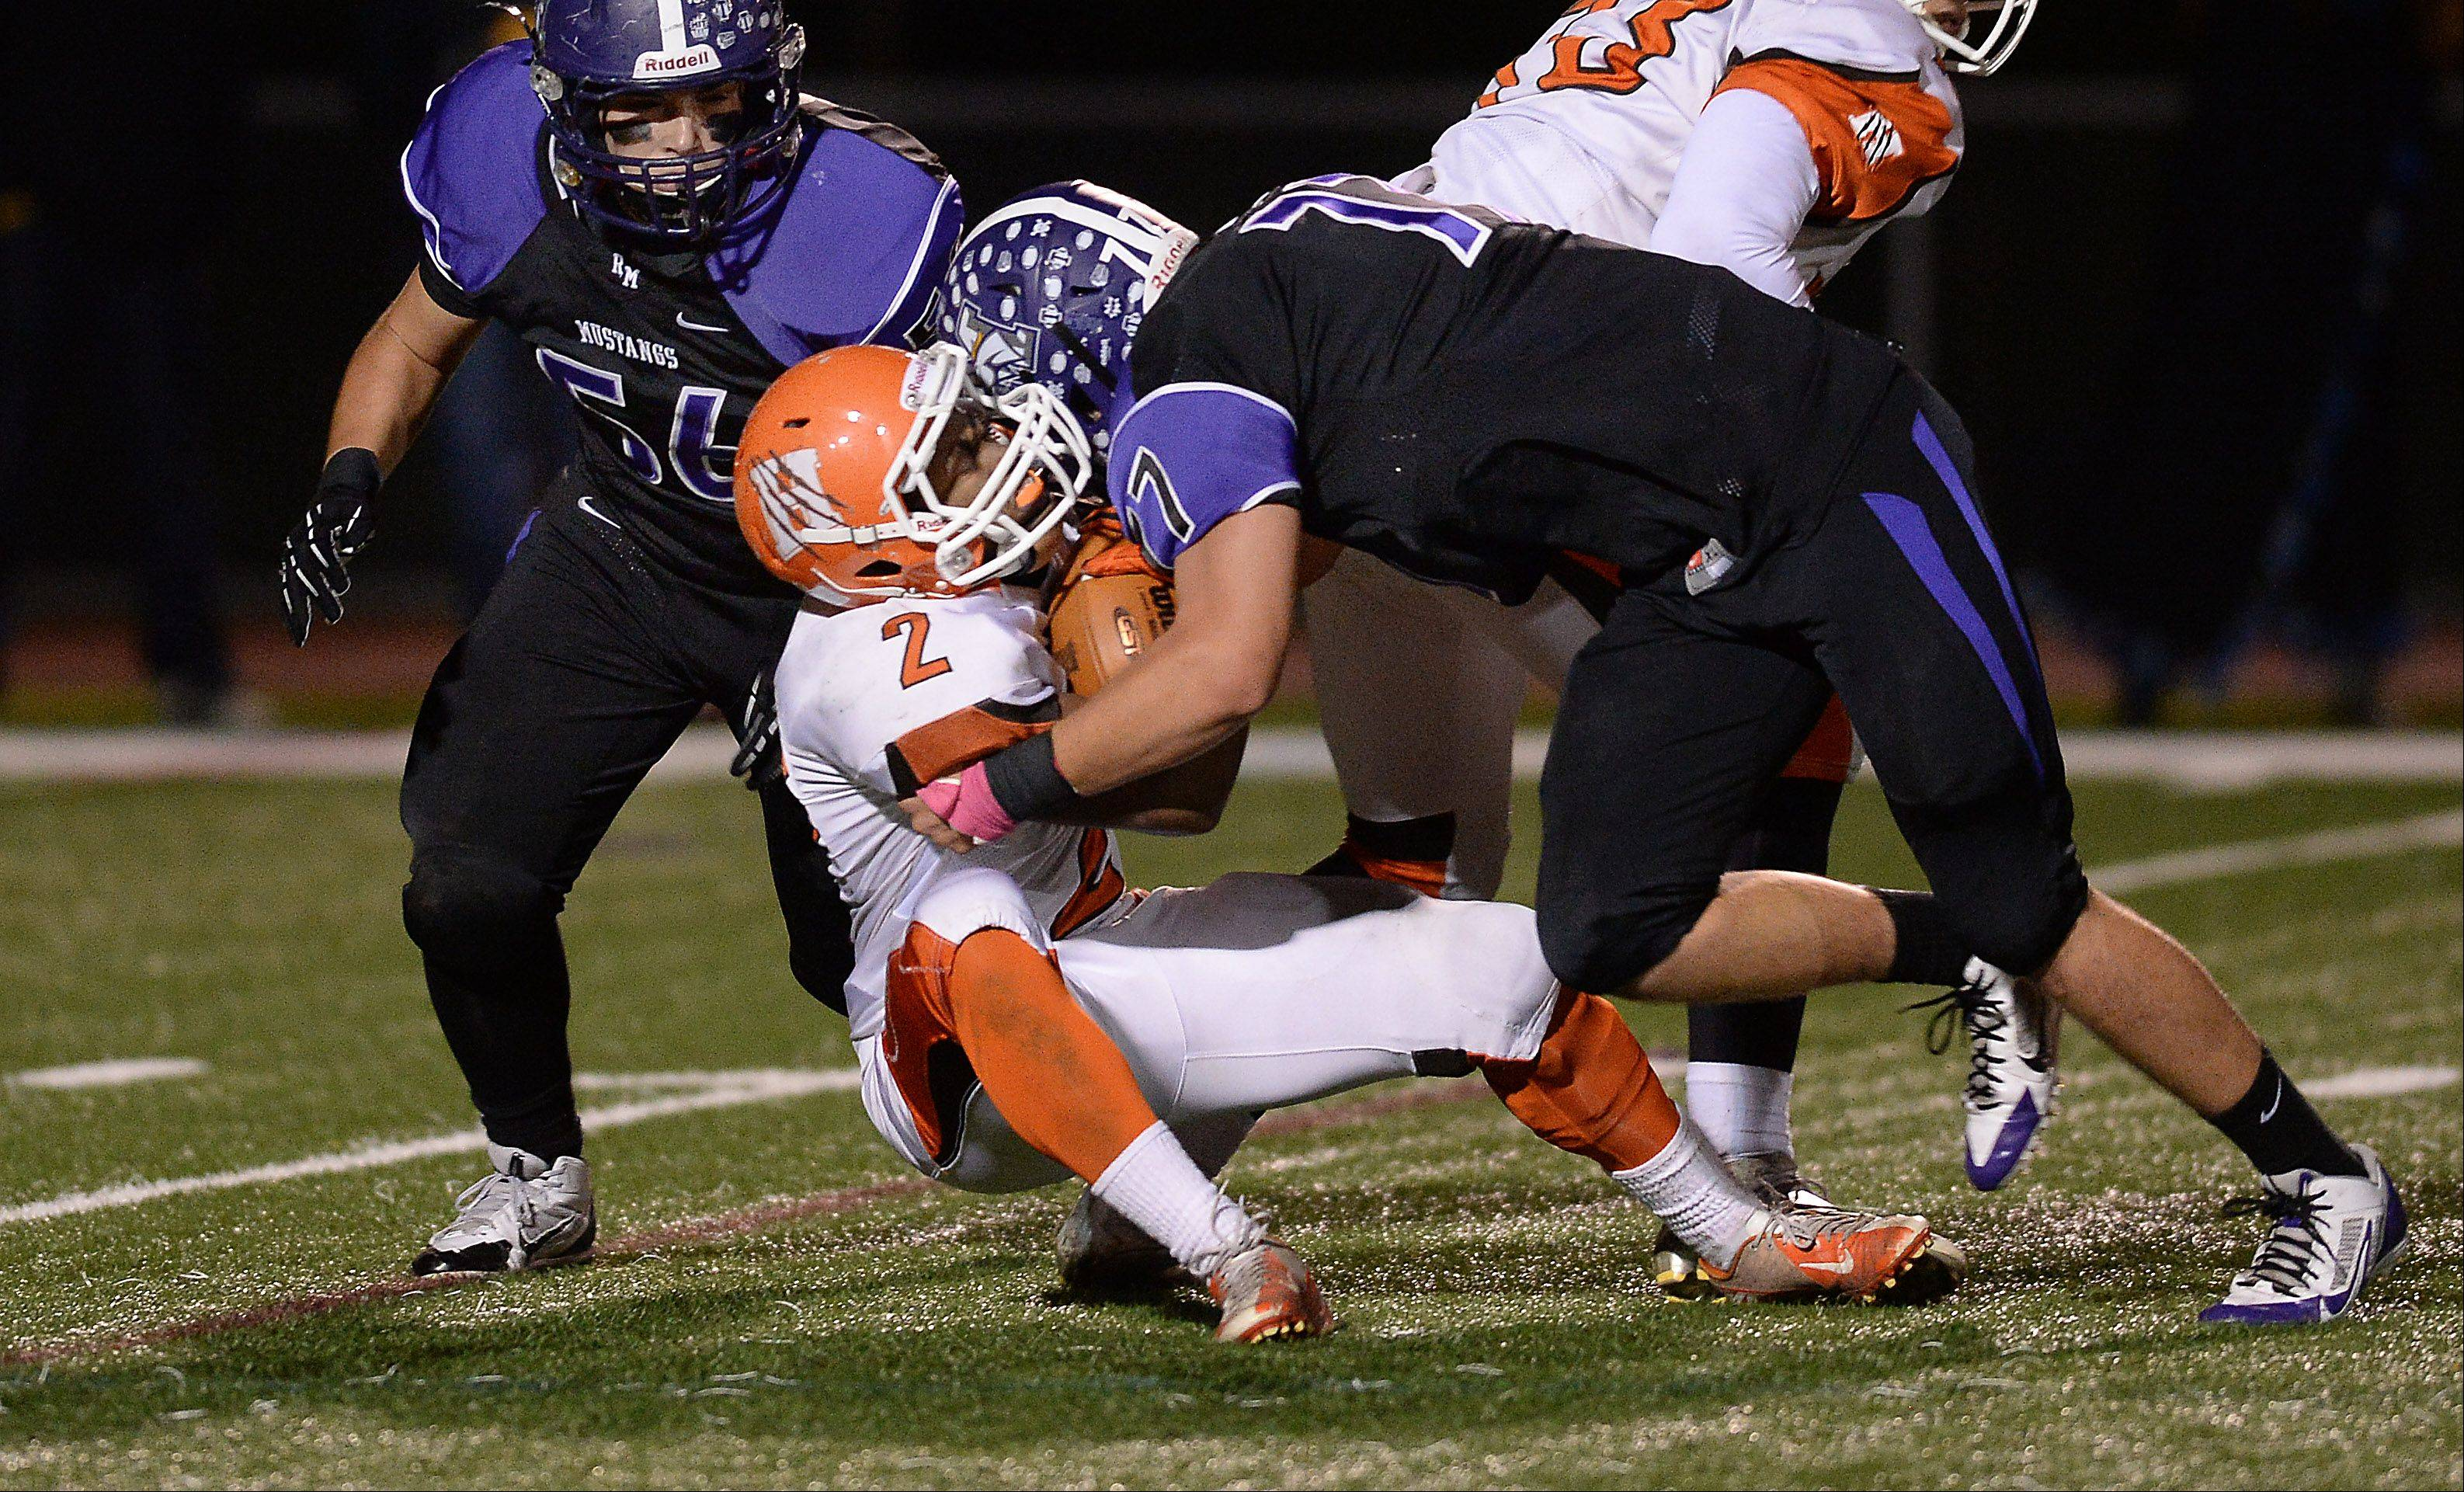 Rolling Meadows' Matt Long stops Hersey's Mario Thomas in his tracks in the second quarter in the varsity football matchup at Rolling Meadows High School on Friday.